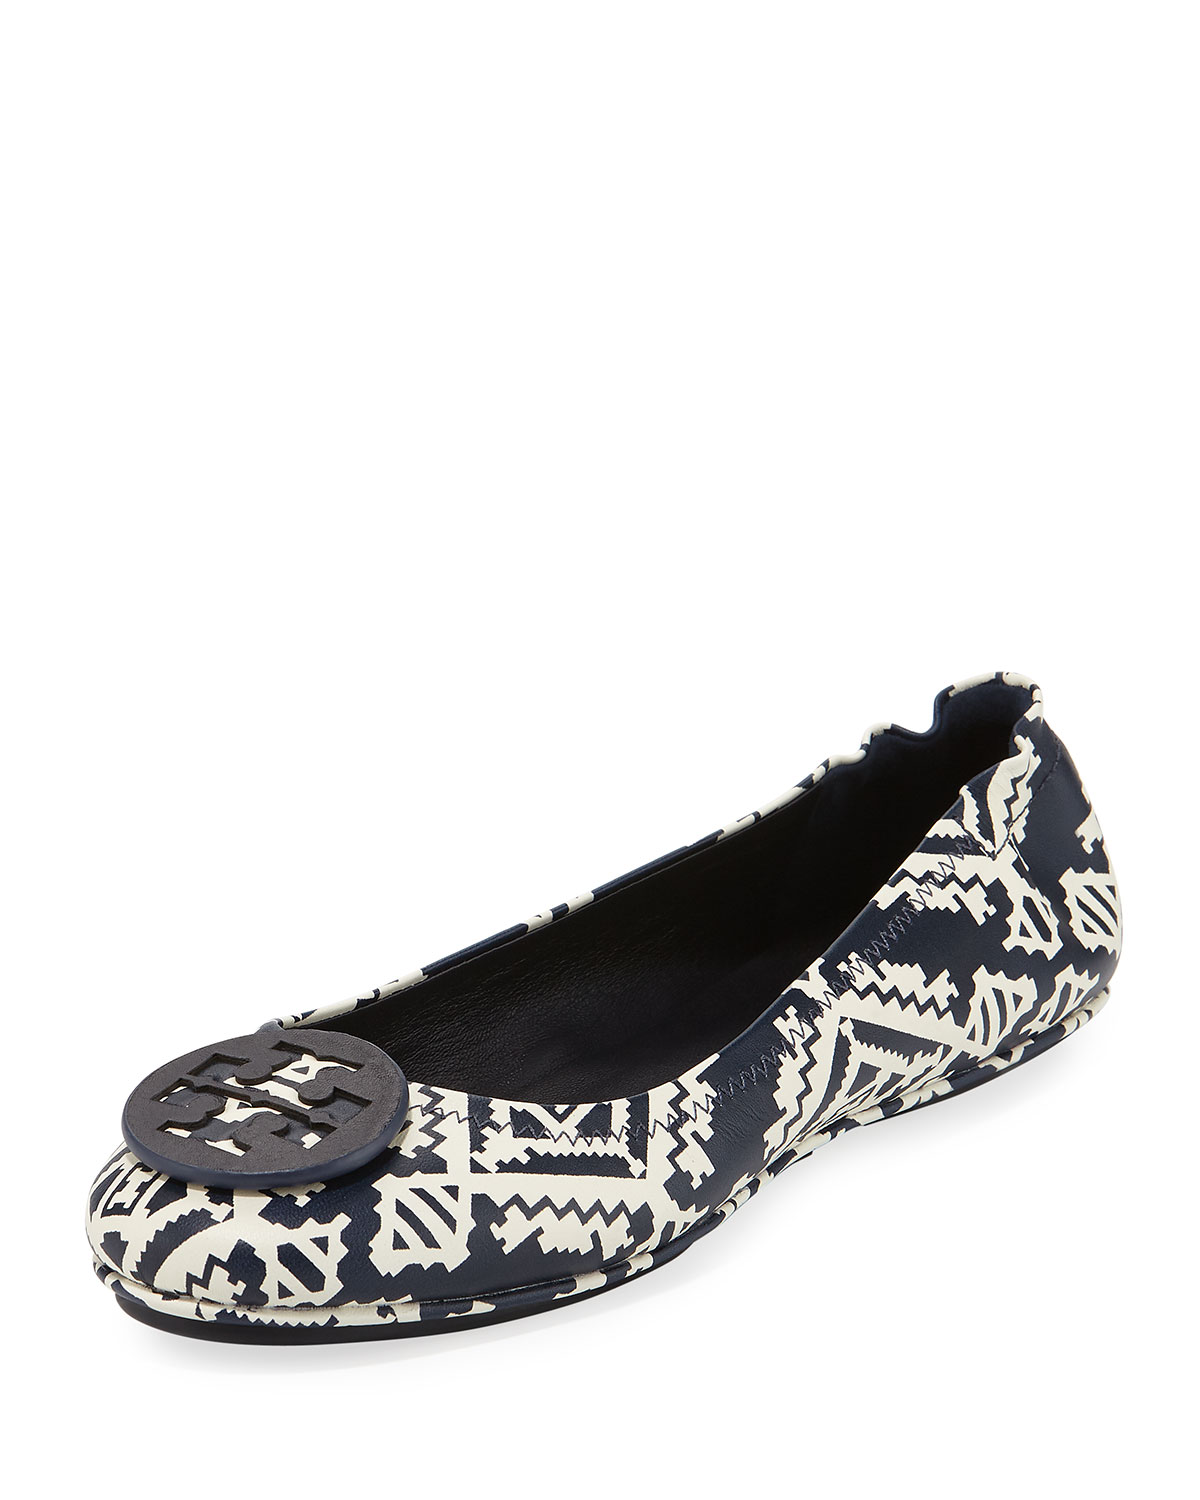 9ad3a1a93716 ... Burch Minnie Floral Travel Logo Ballet Flats Neiman Marcus Minnie  Floral Travel Logo Ballet Flats Source · Authentic Tory Burch Petit Bateau  Kids Export ...